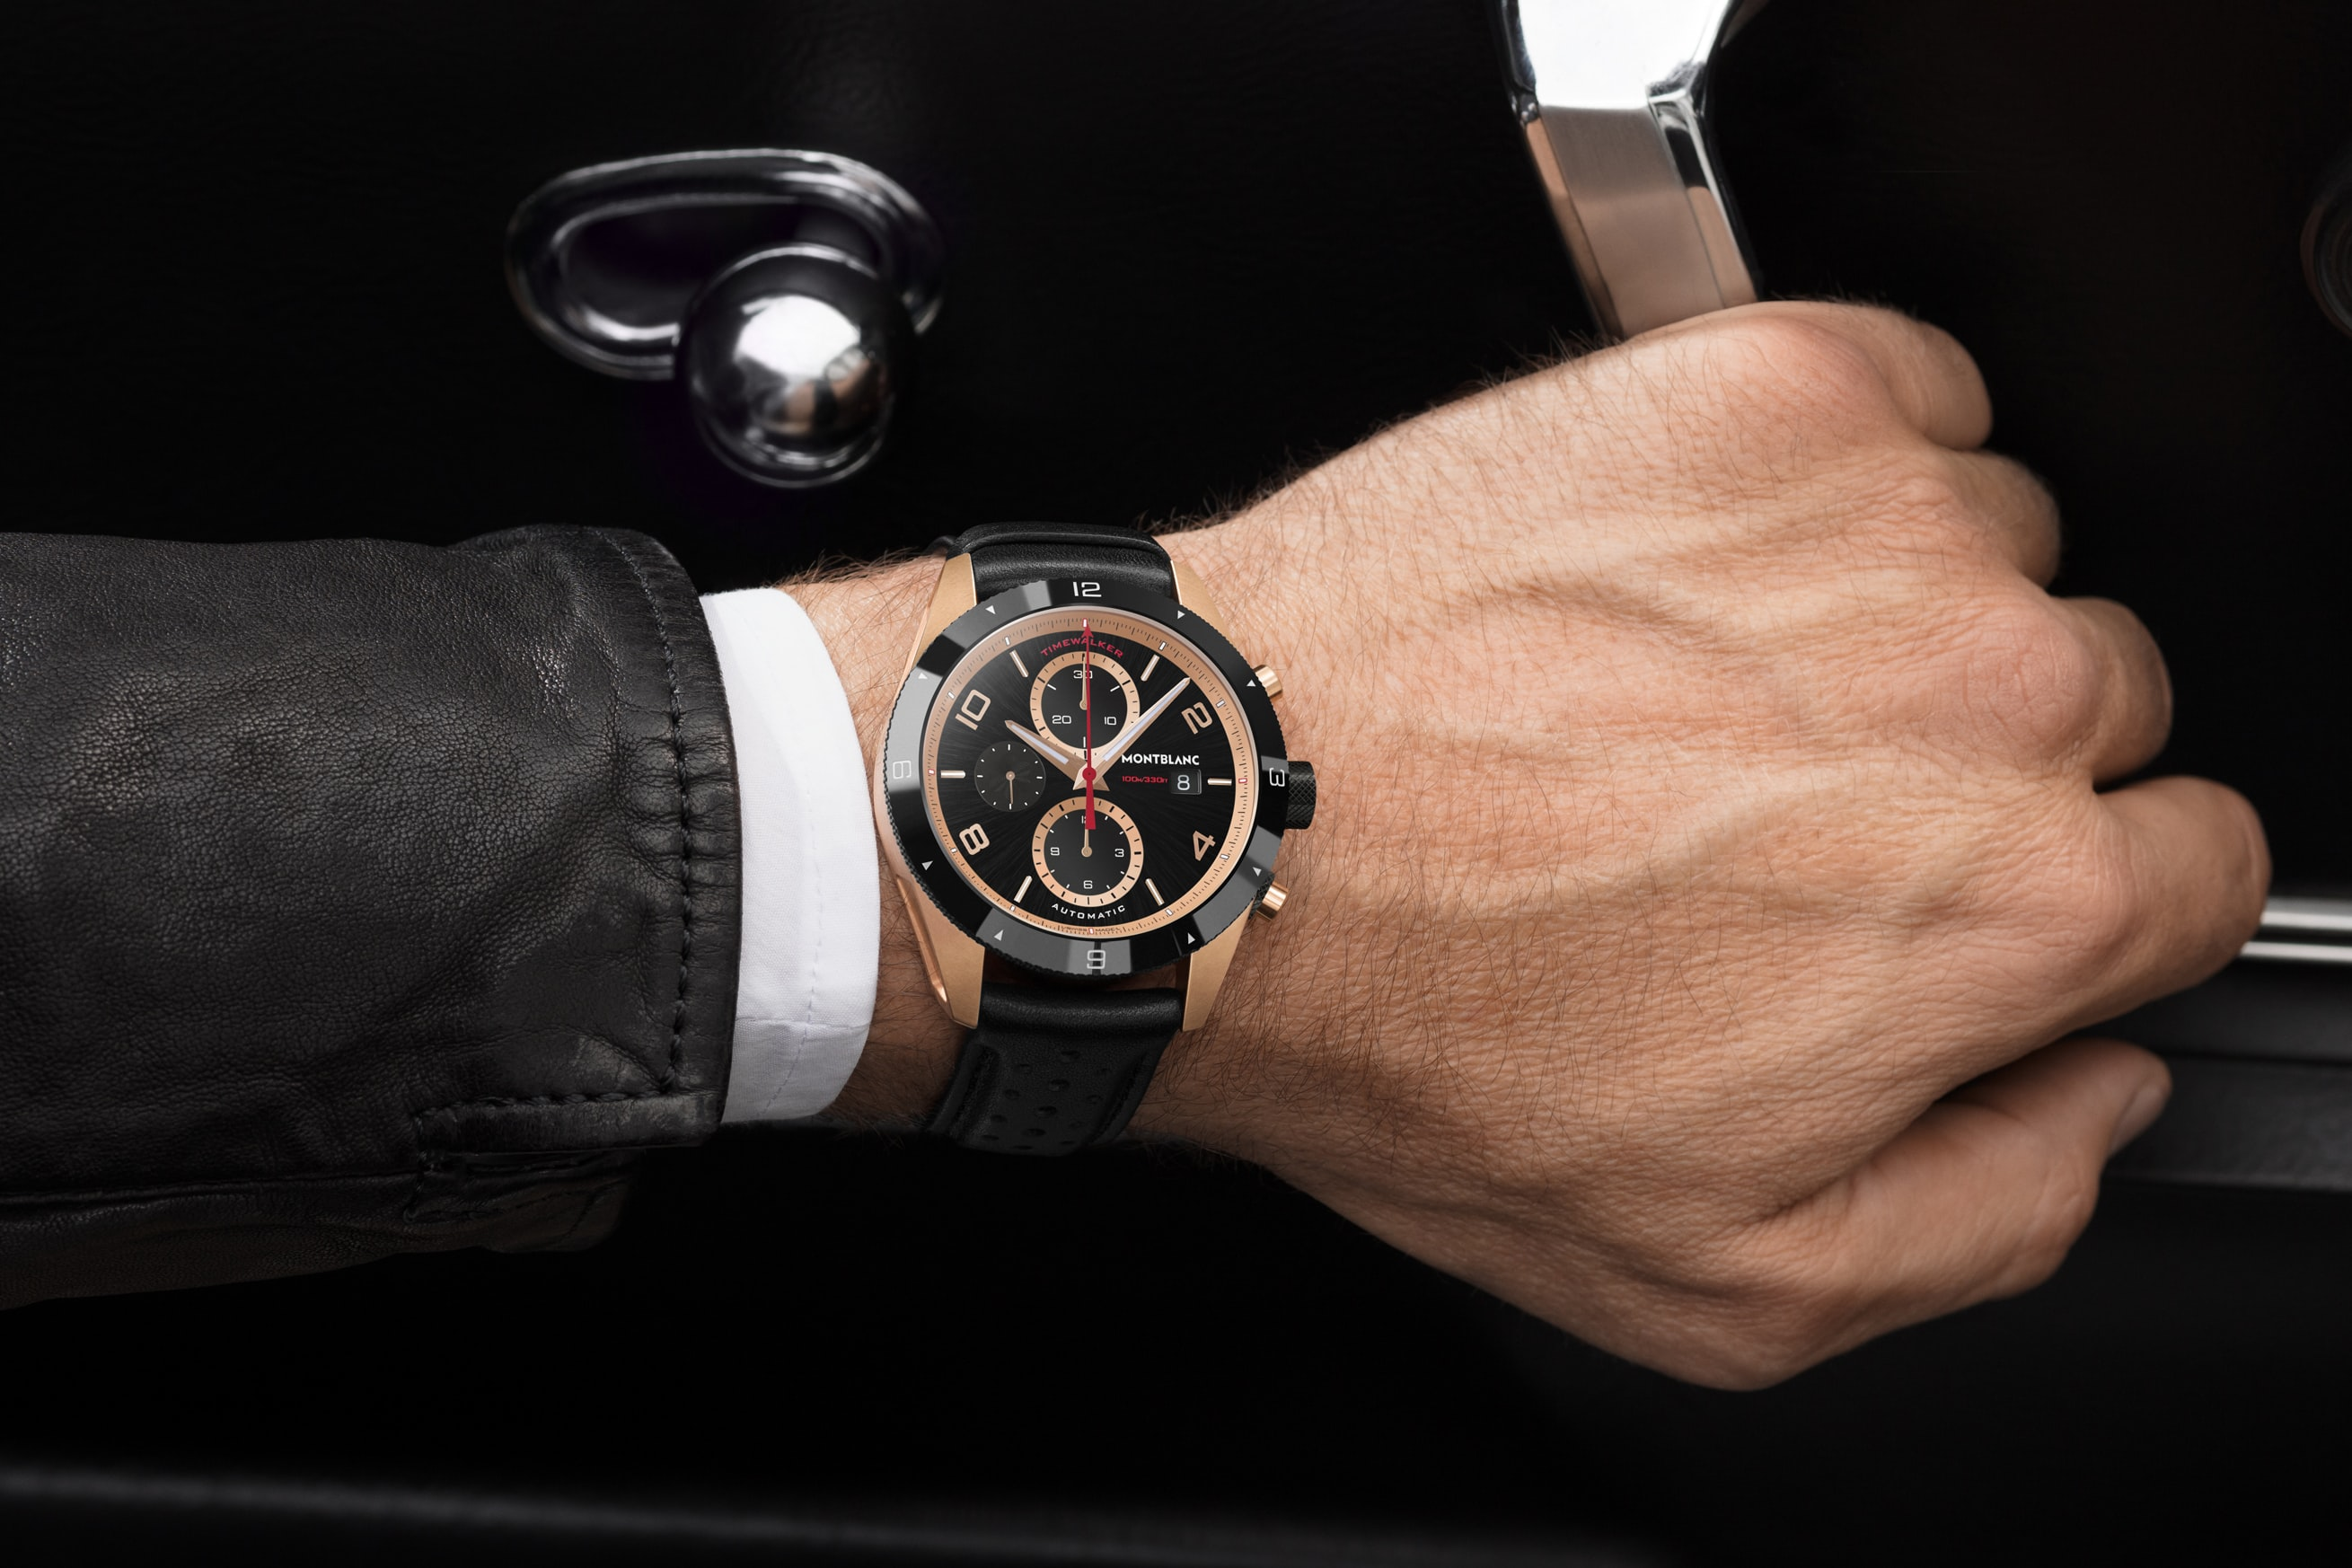 Timewalker Chronograph red gold lifestyle dispatches: with montblanc at the petrolhead's paradise that is the goodwood festival of speed Dispatches: With Montblanc At The Petrolhead's Paradise That Is The Goodwood Festival Of Speed 117051